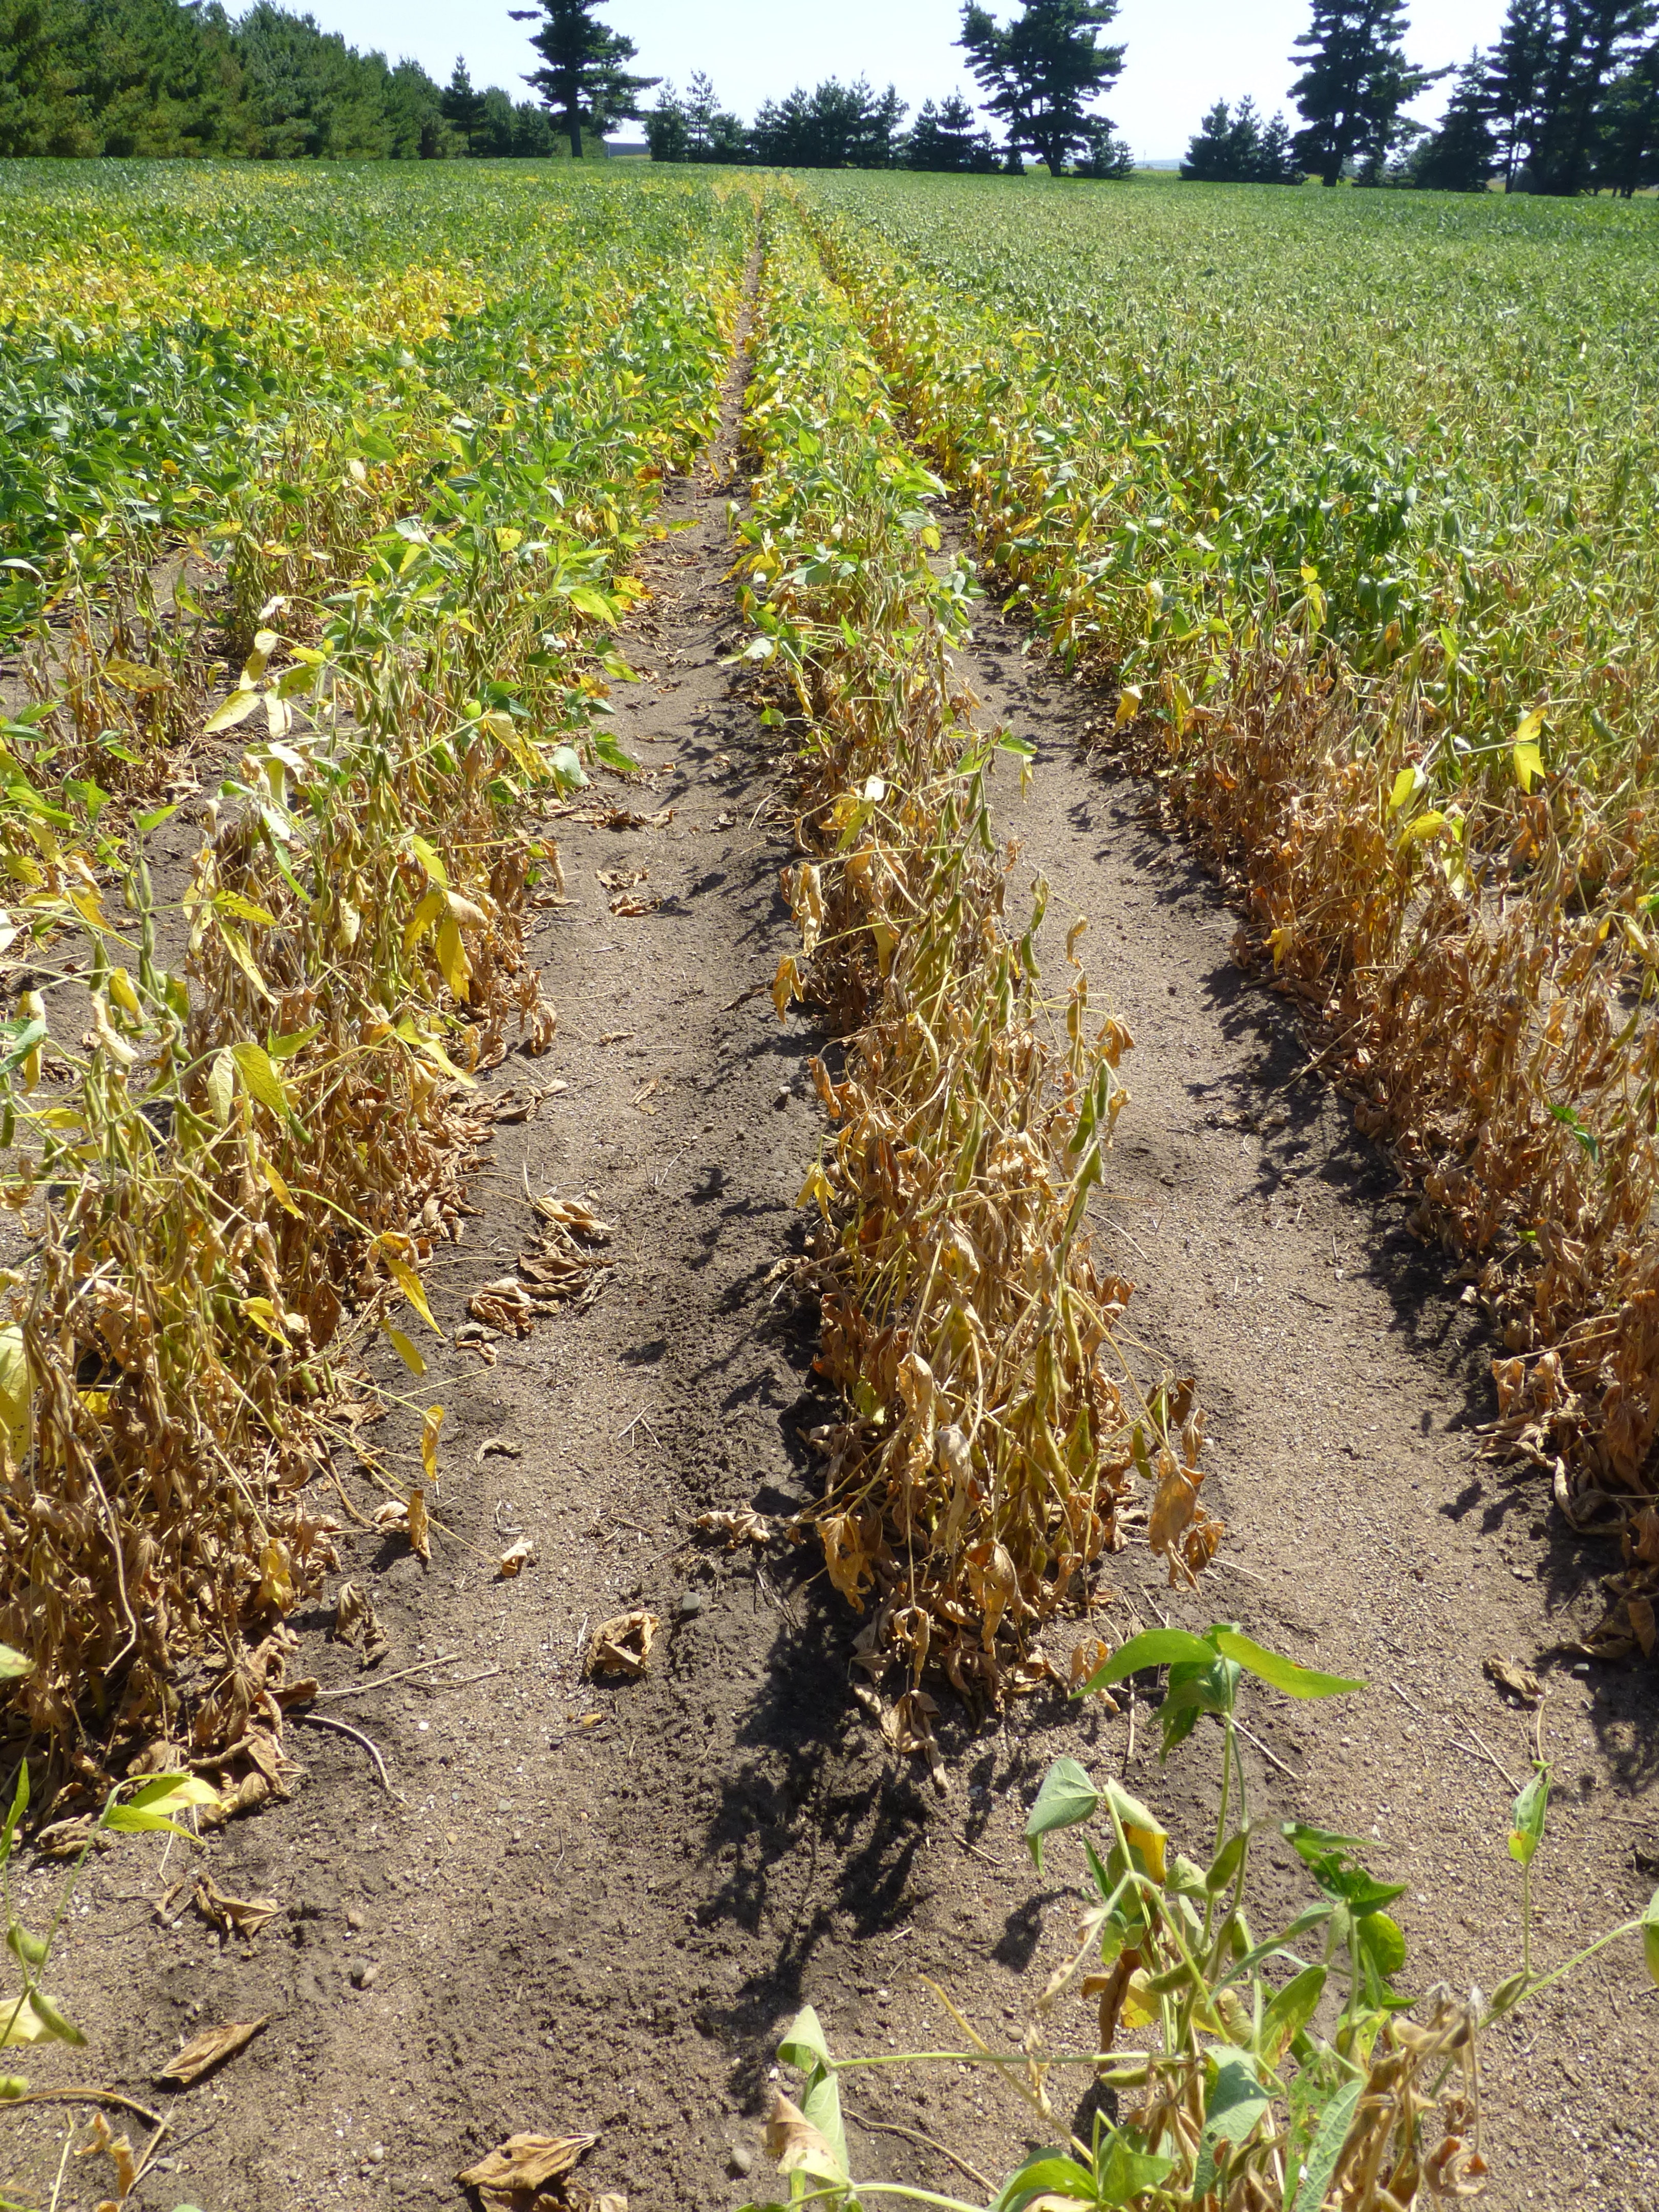 8 facts about charcoal rot in soybean | Integrated Crop